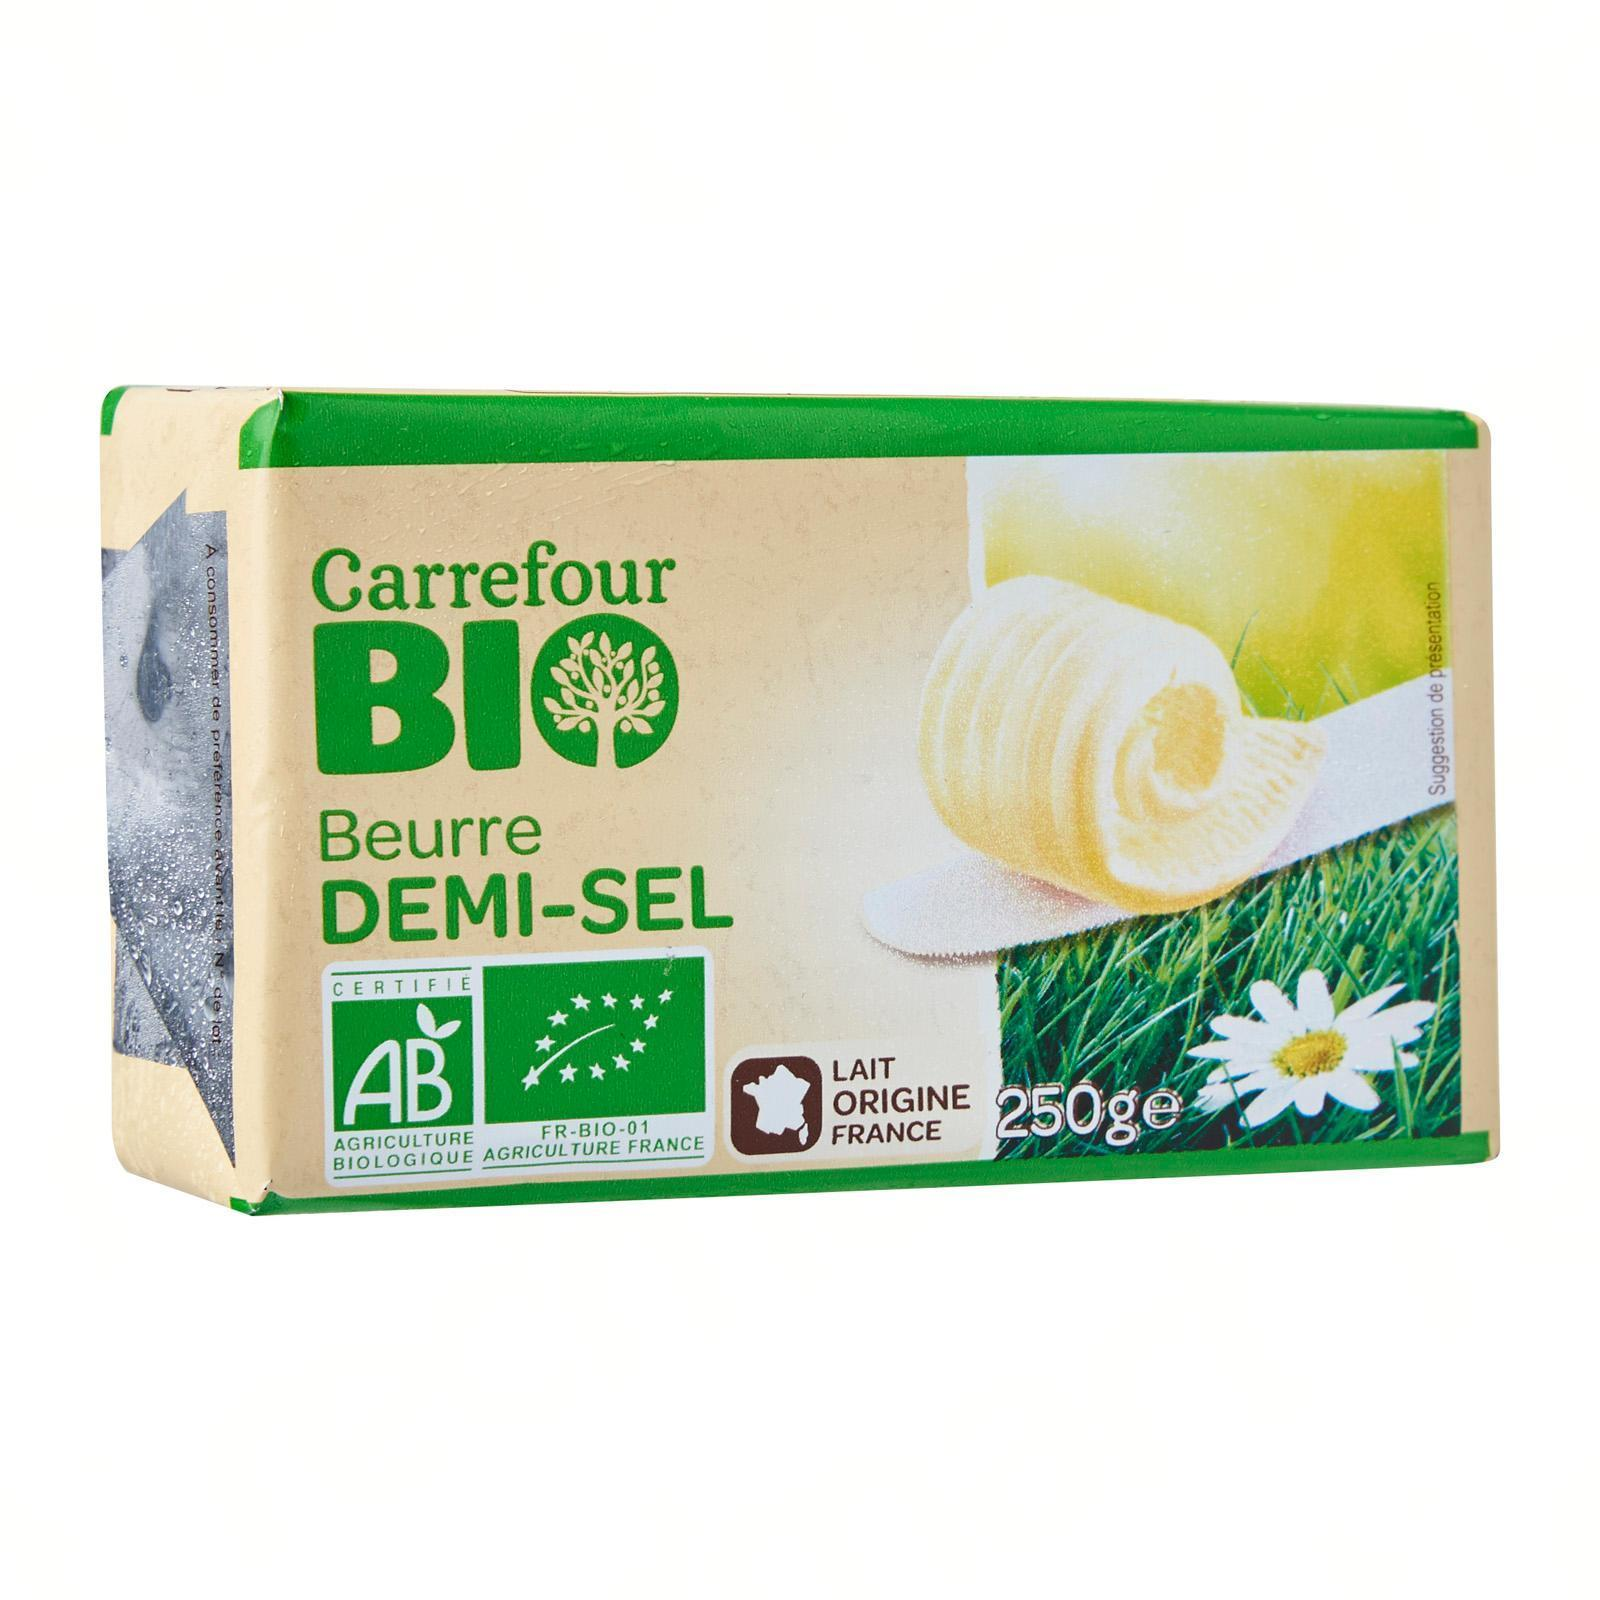 stm>Butter, Salted, Carrefour 7oz, 250g